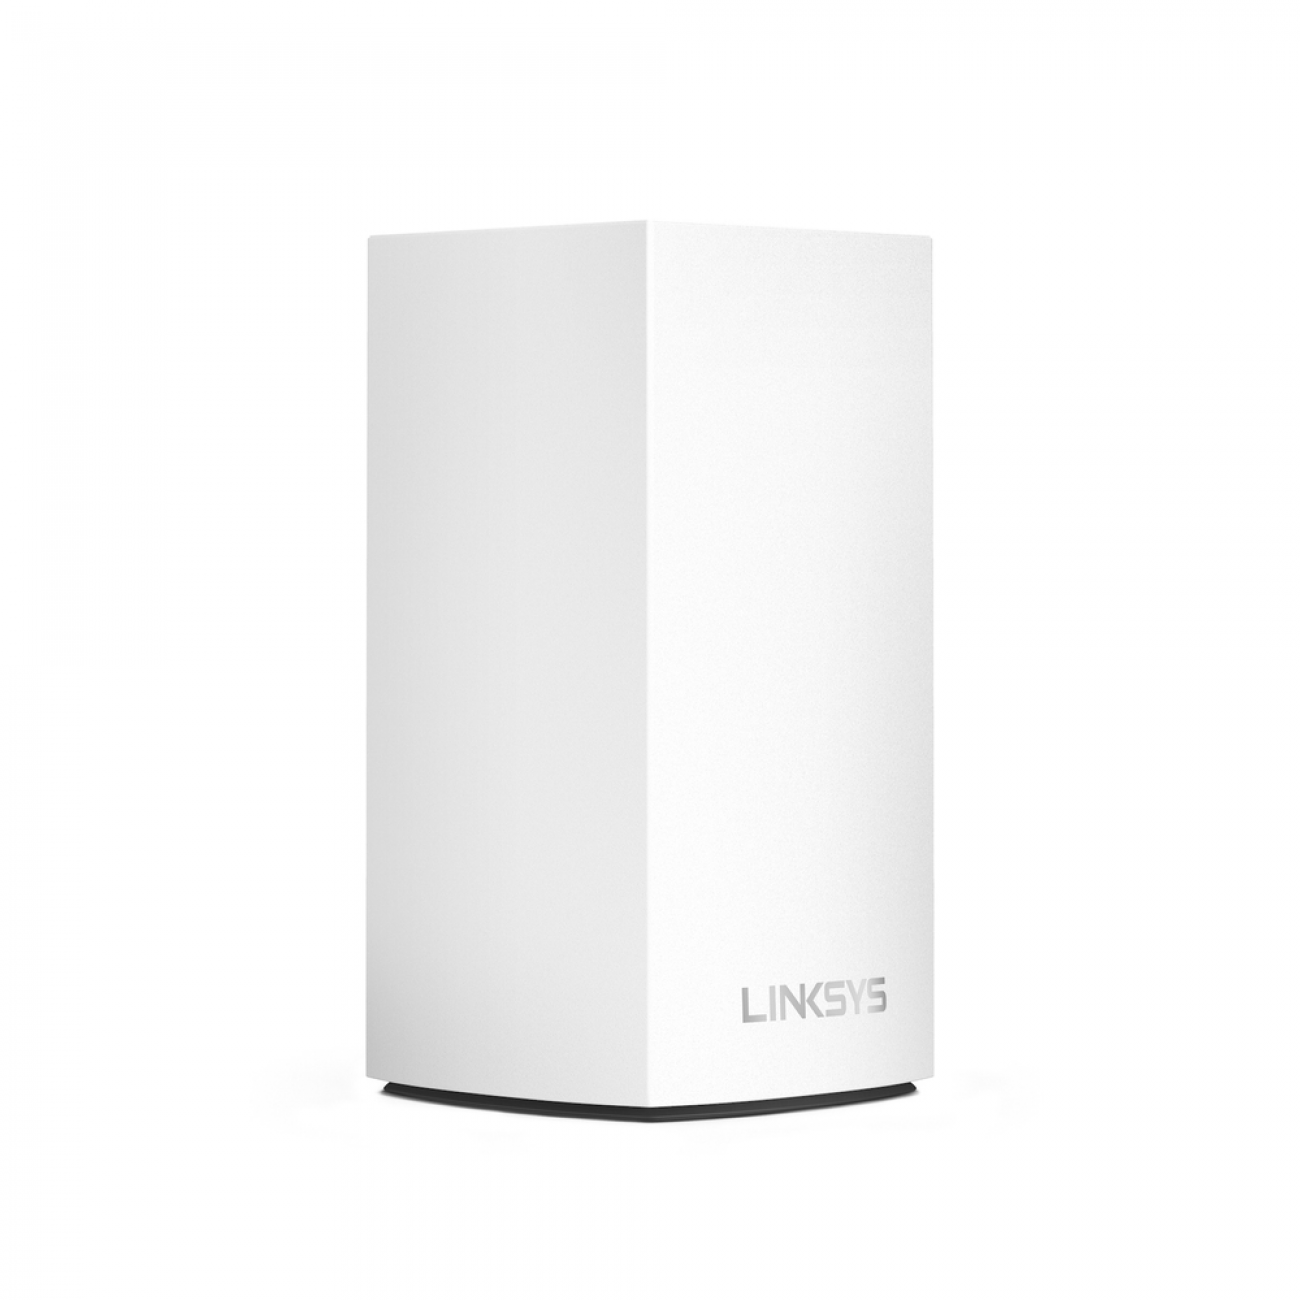 LINKSYS VELOP WHW0102-AH DUAL-BAND AC2600 INTELLIGENT MESH WIFI SYSTEM WIFI 5 MU-MIMO SYSTEM 2-PK